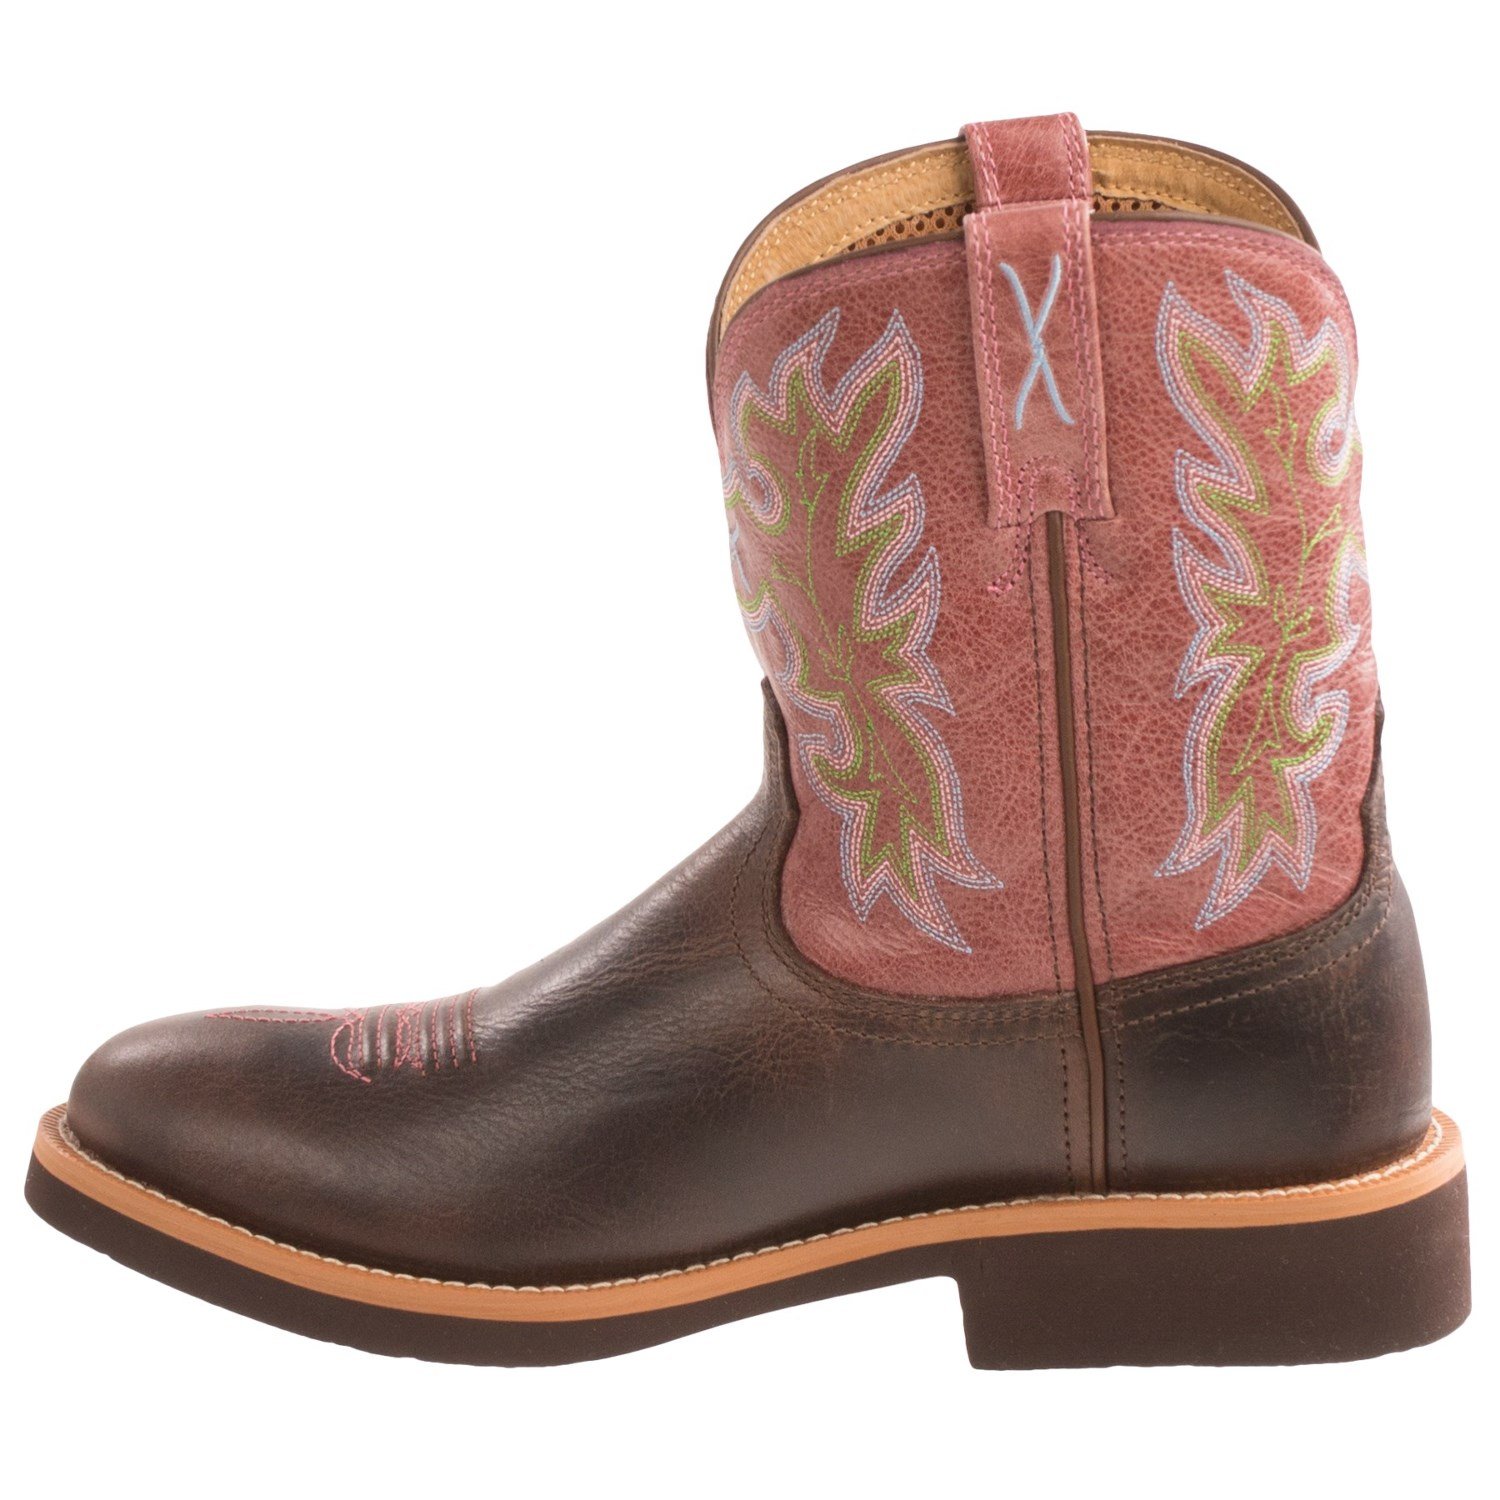 Popular Twisted X Distressed Ruff Stock Cowboy Boots - Wide Square Toe - Country Outfitter